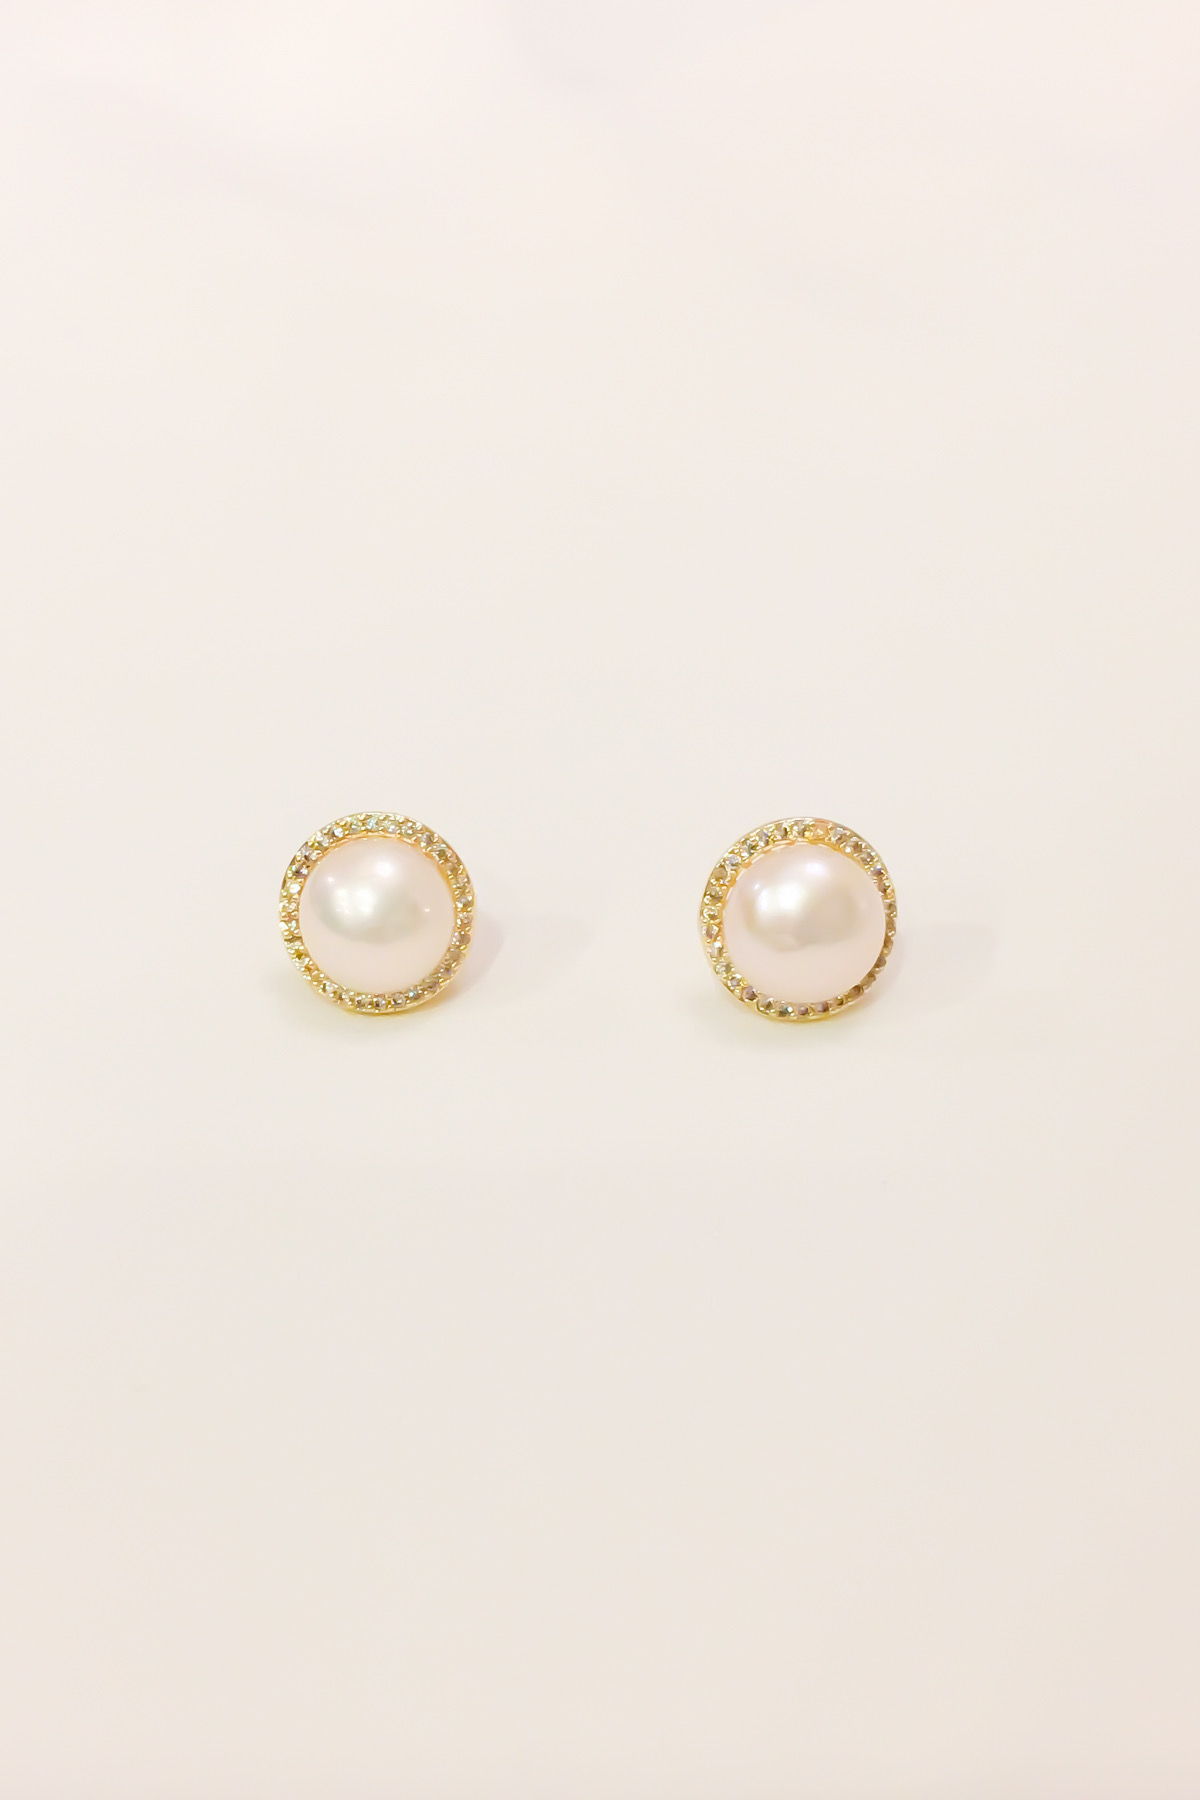 SKYE San Francisco Shop SF Chic Modern Elegant Classy Women Jewelry French Parisian Minimalist Arlette 18K Gold Freshwater Pearl Earrings 2